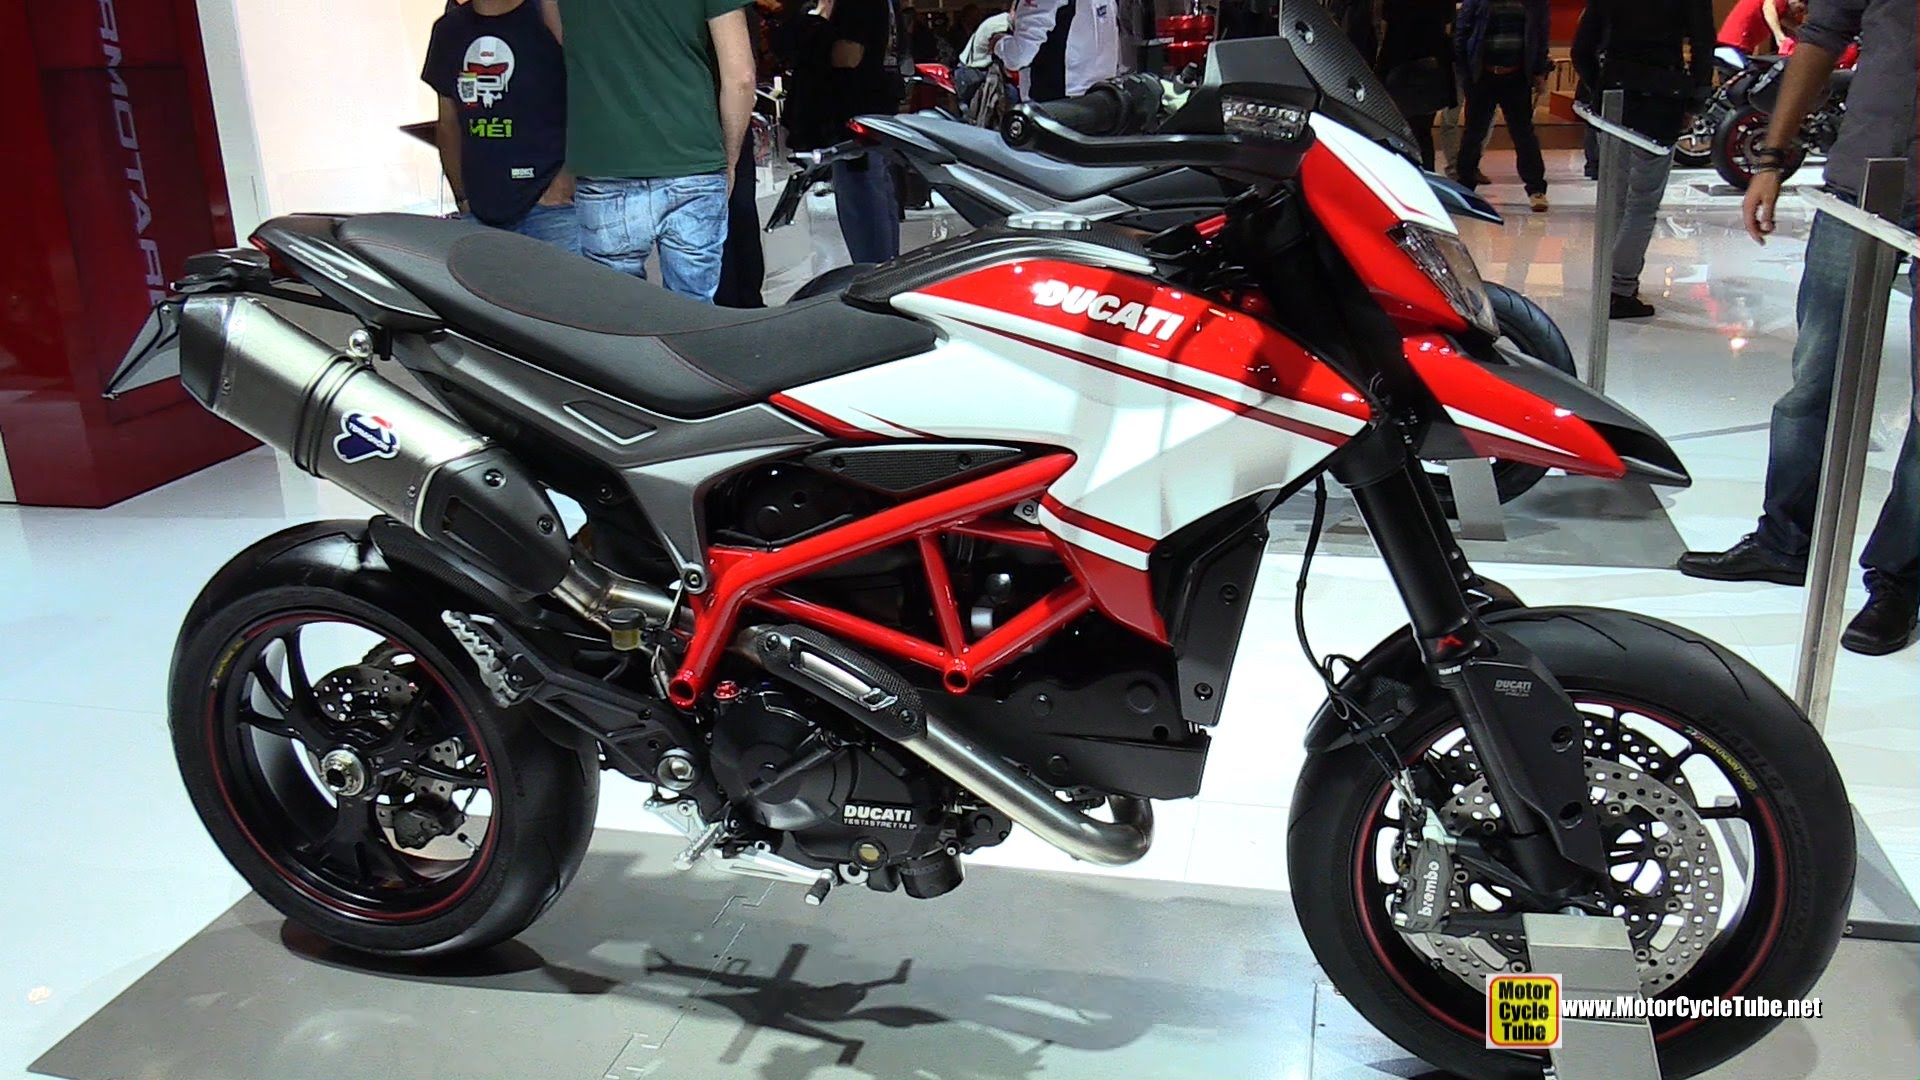 Ducati Hypermotard SP 2015 images #79642